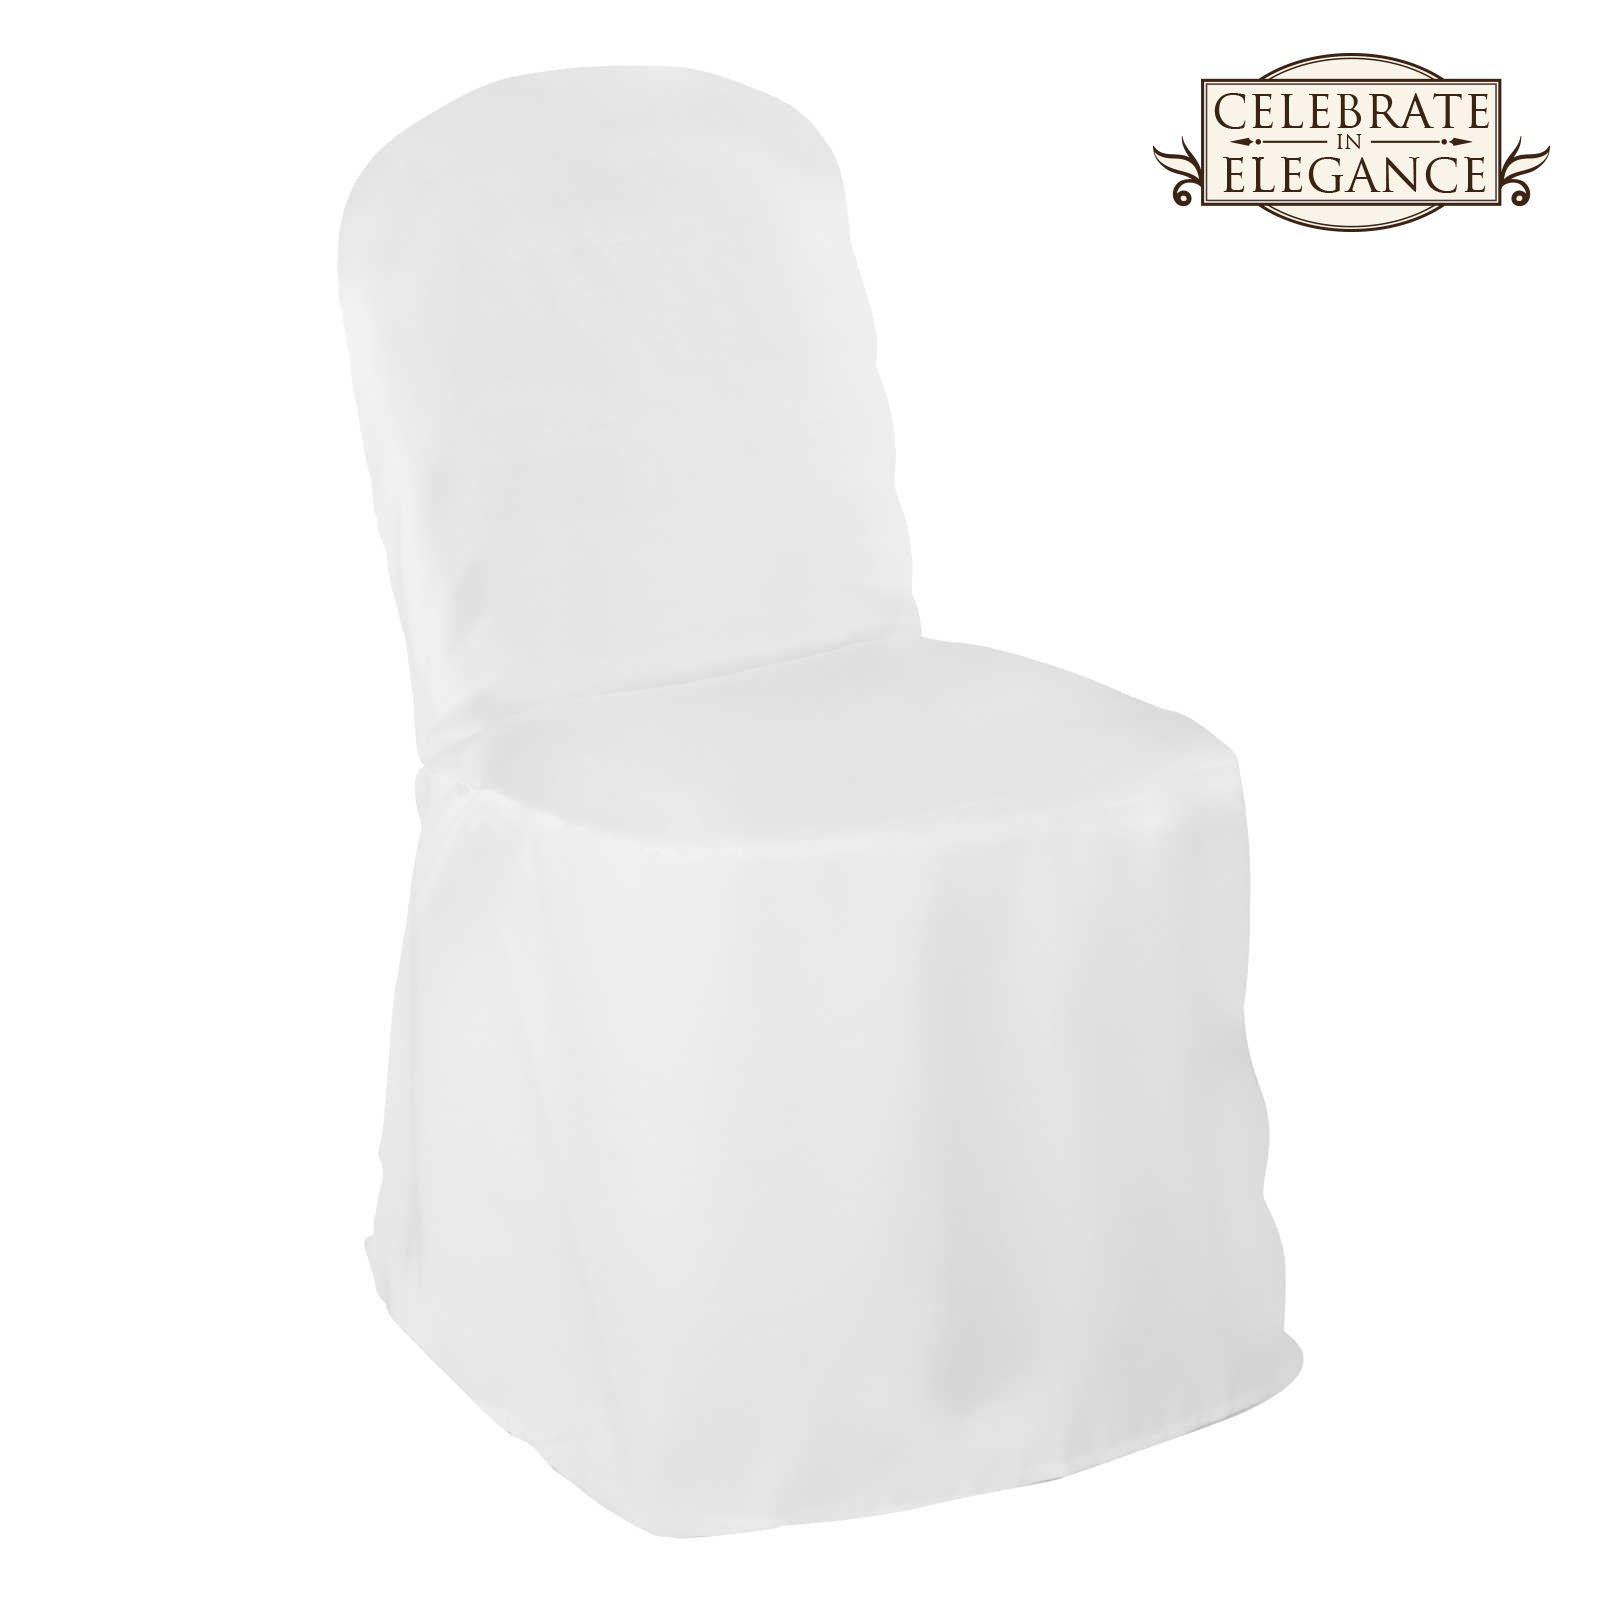 100 Wedding Banquet Chair Covers Multiple colors Available